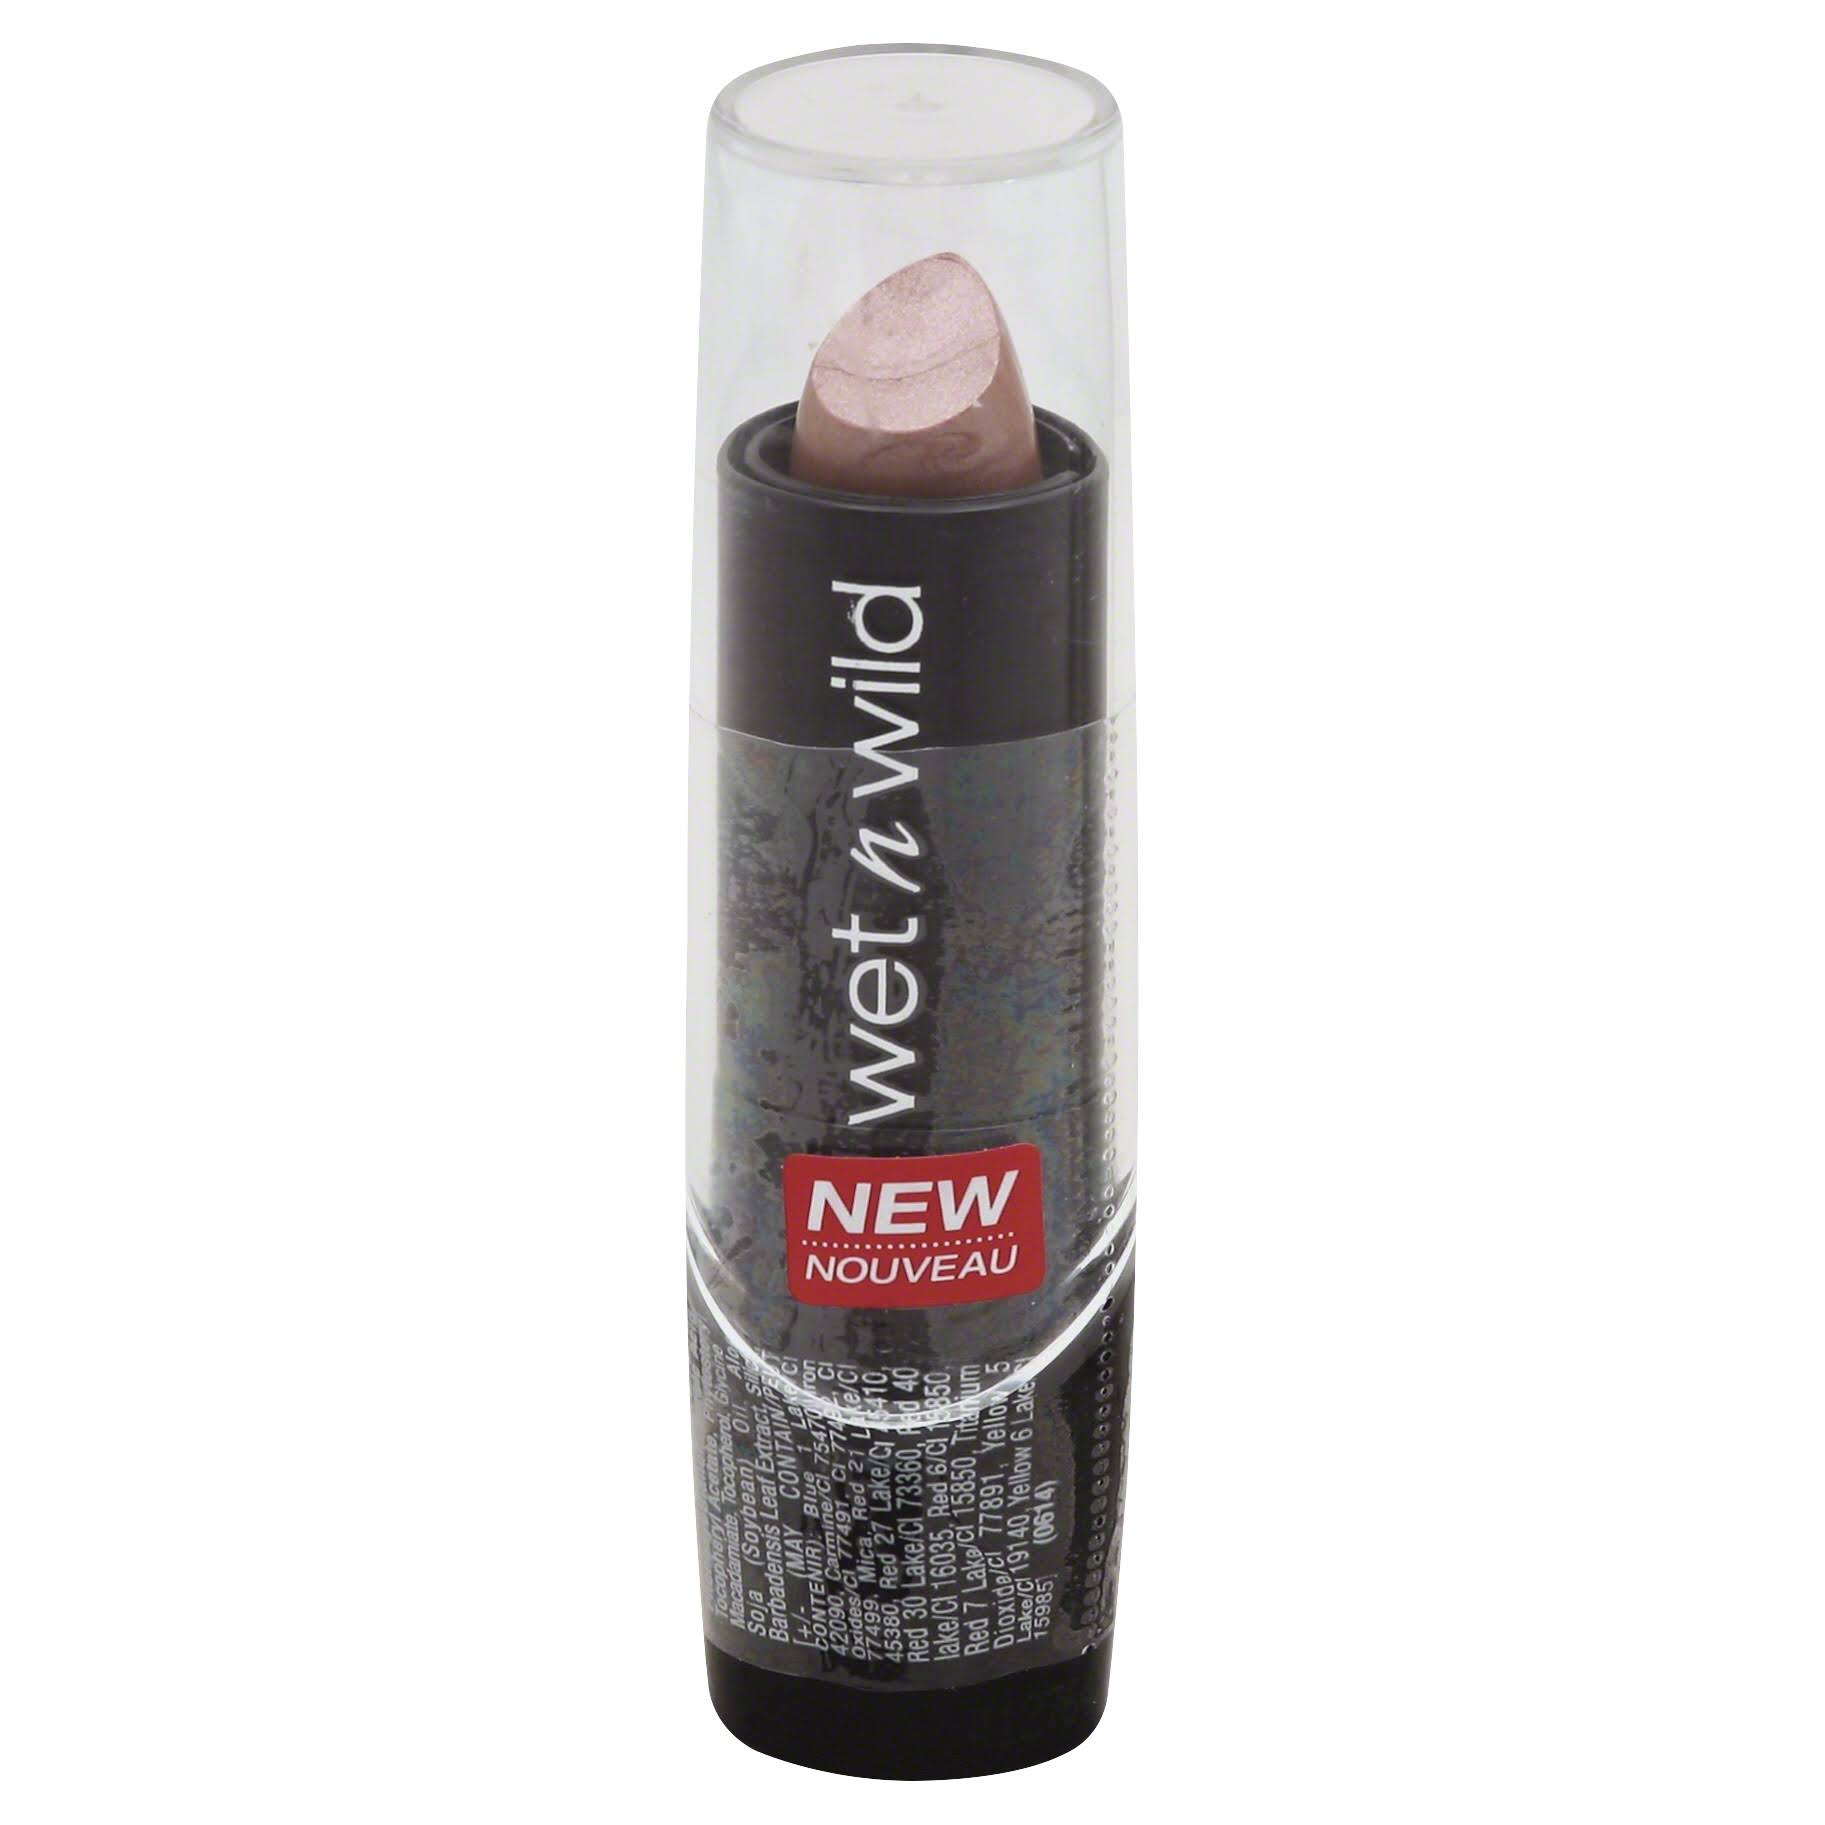 Wet n Wild 531C Lip Color - Breeze, 0.13oz